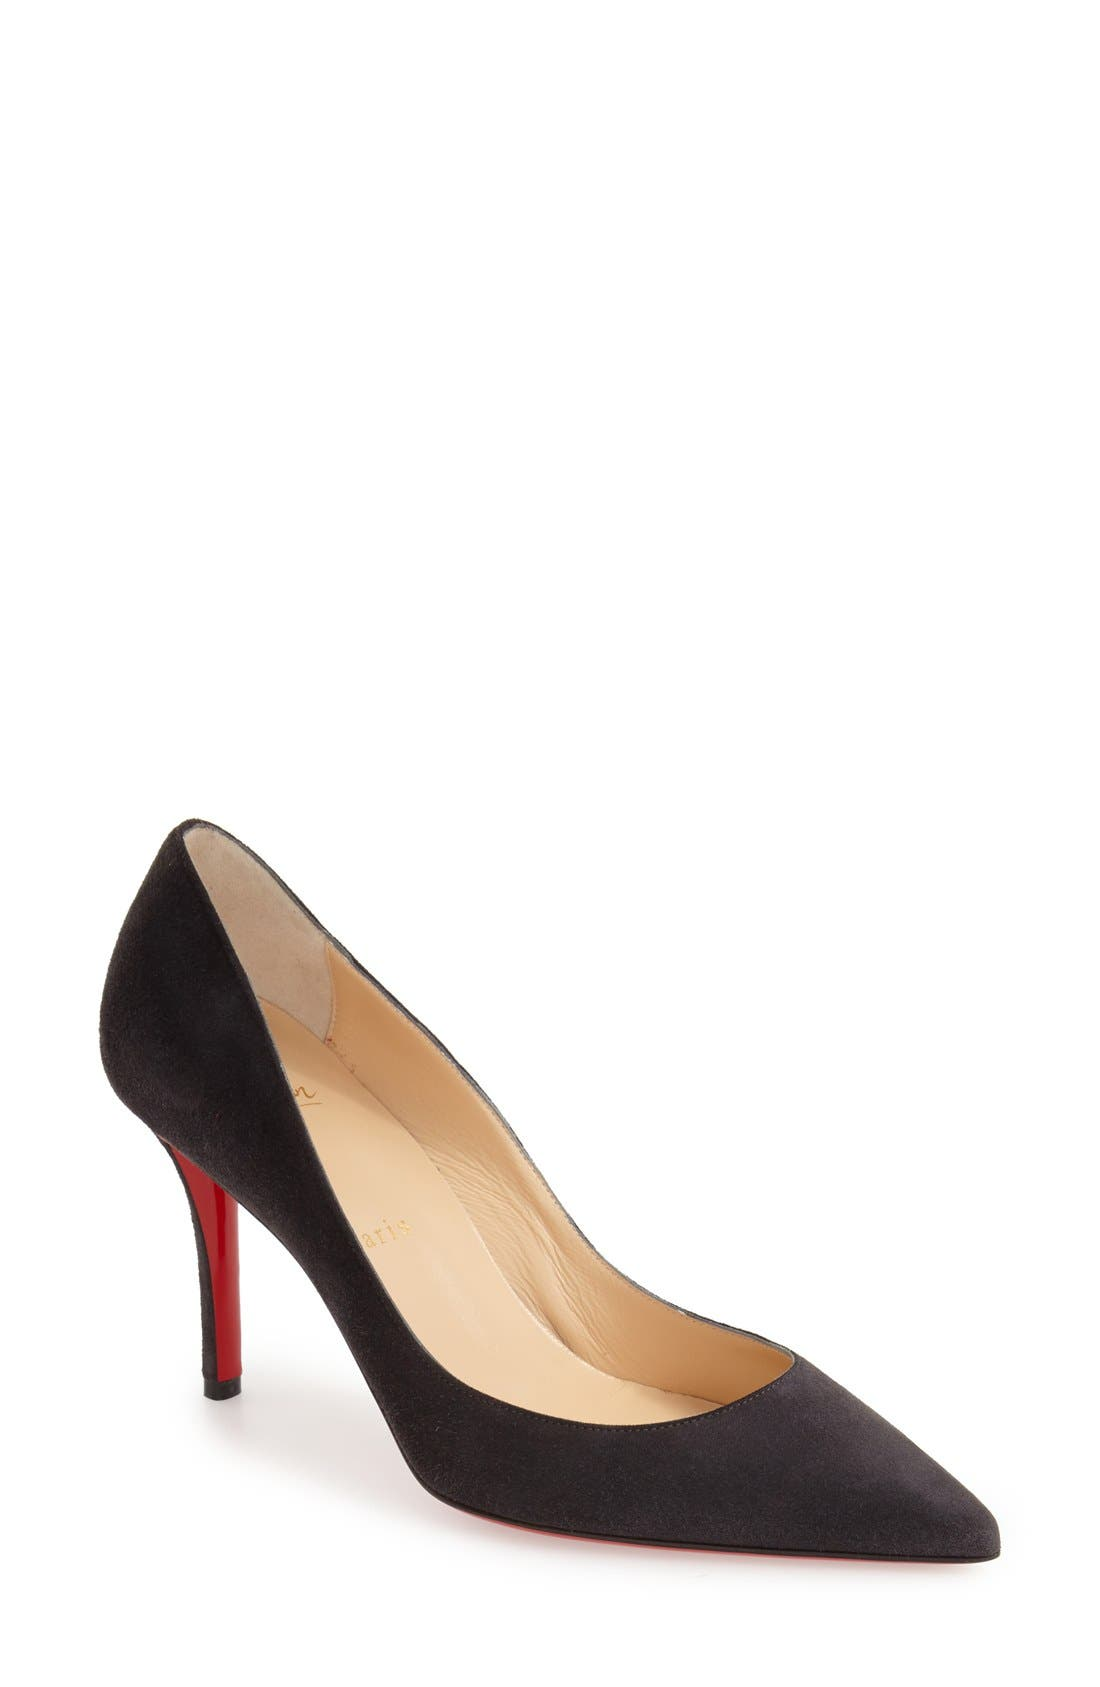 christian louboutin apostrophy nordstrom